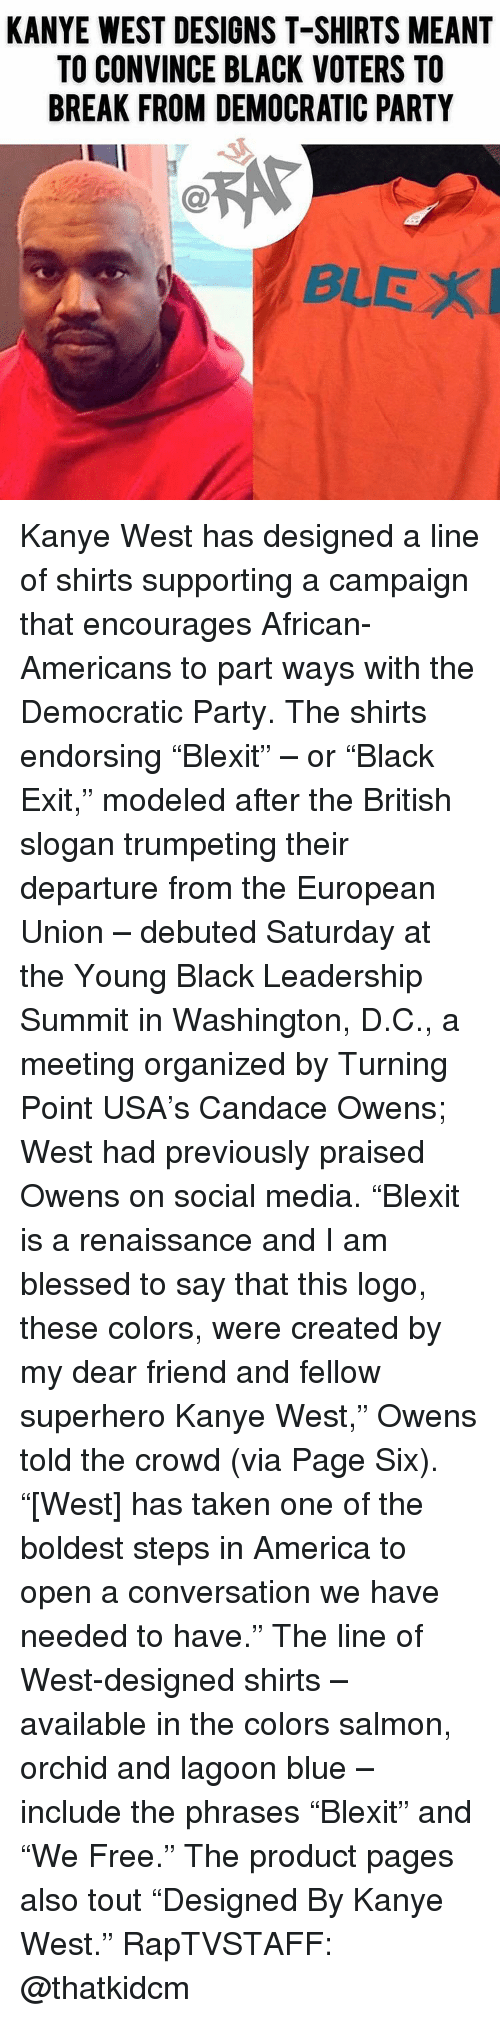 """European Union: KANYE WEST DESIGNS T-SHIRTS MEANT  TO CONVINCE BLACK VOTERS TO  BREAK FROM DEMOCRATIC PARTY  Ca  BLEX Kanye West has designed a line of shirts supporting a campaign that encourages African-Americans to part ways with the Democratic Party. The shirts endorsing """"Blexit"""" – or """"Black Exit,"""" modeled after the British slogan trumpeting their departure from the European Union – debuted Saturday at the Young Black Leadership Summit in Washington, D.C., a meeting organized by Turning Point USA's Candace Owens; West had previously praised Owens on social media. """"Blexit is a renaissance and I am blessed to say that this logo, these colors, were created by my dear friend and fellow superhero Kanye West,"""" Owens told the crowd (via Page Six). """"[West] has taken one of the boldest steps in America to open a conversation we have needed to have."""" The line of West-designed shirts – available in the colors salmon, orchid and lagoon blue – include the phrases """"Blexit"""" and """"We Free."""" The product pages also tout """"Designed By Kanye West."""" RapTVSTAFF: @thatkidcm"""